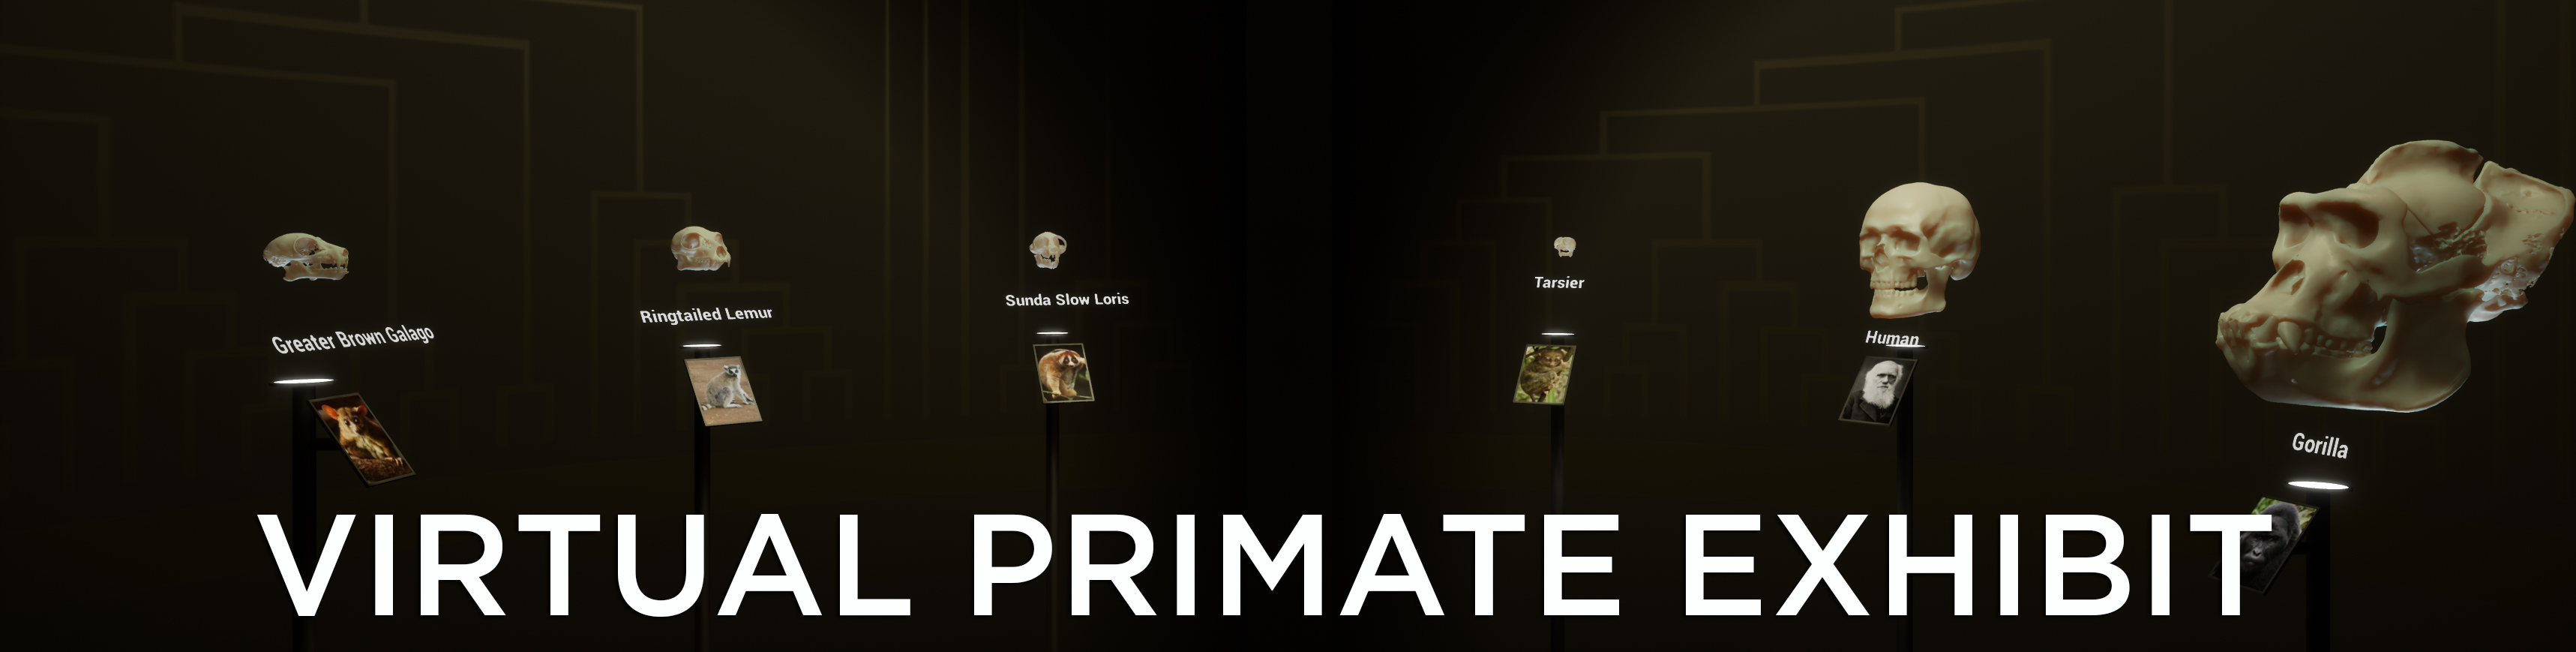 Virtual Primate Exhibit